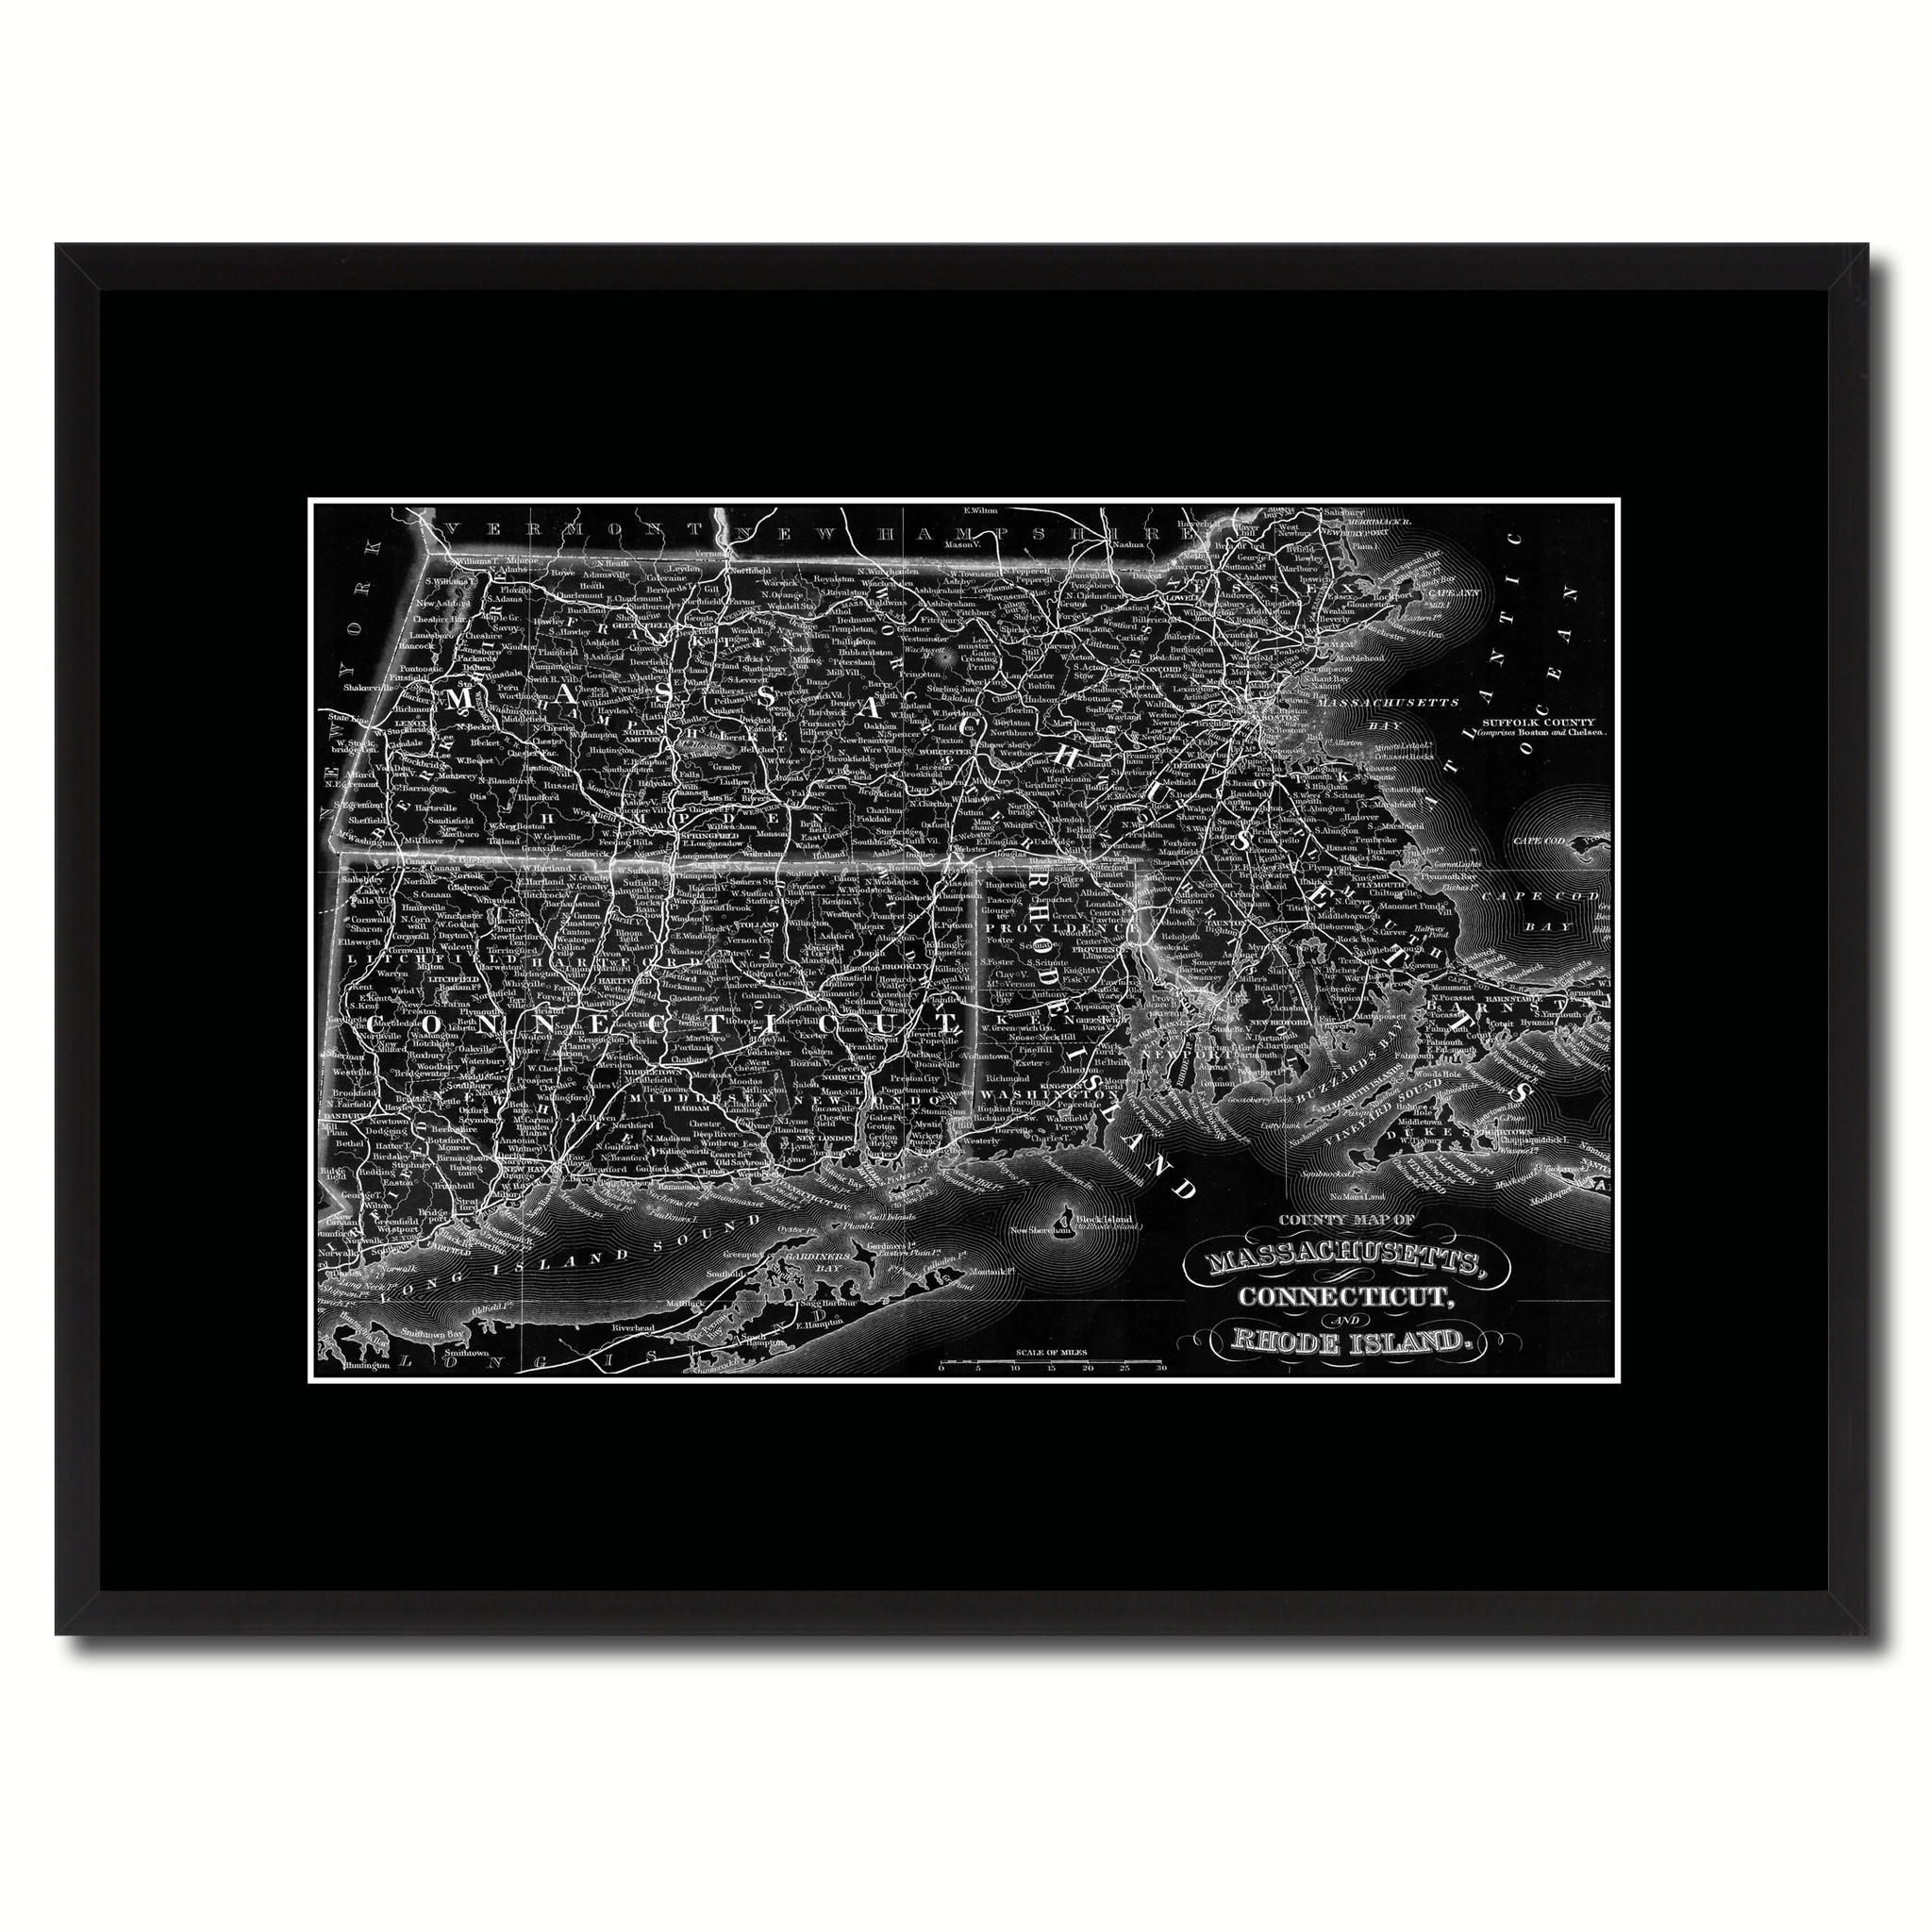 "Massachusetts Connecticut Rhode Island Vintage Monochrome Map Canvas Print, Gifts Picture Frames Home Decor Wall Art - 16"" x 21\"""